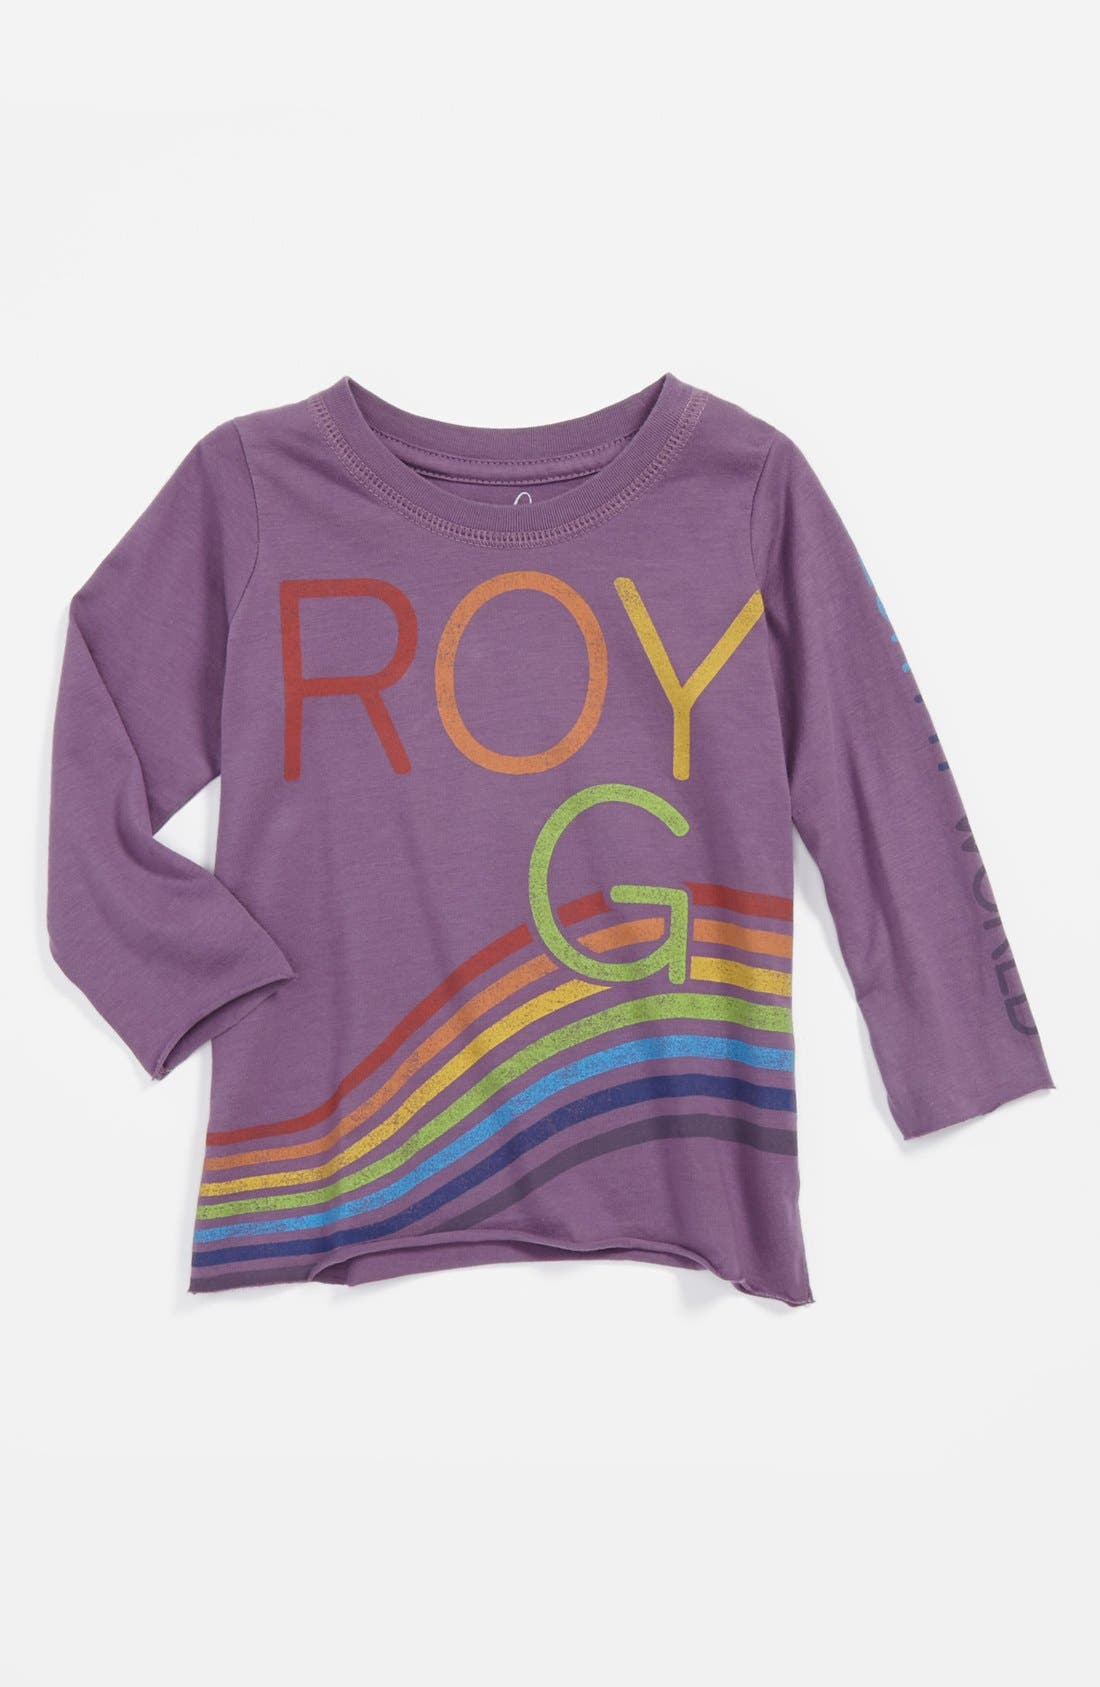 Alternate Image 1 Selected - Peek 'Roy G Biv' Tee (Baby Girls)